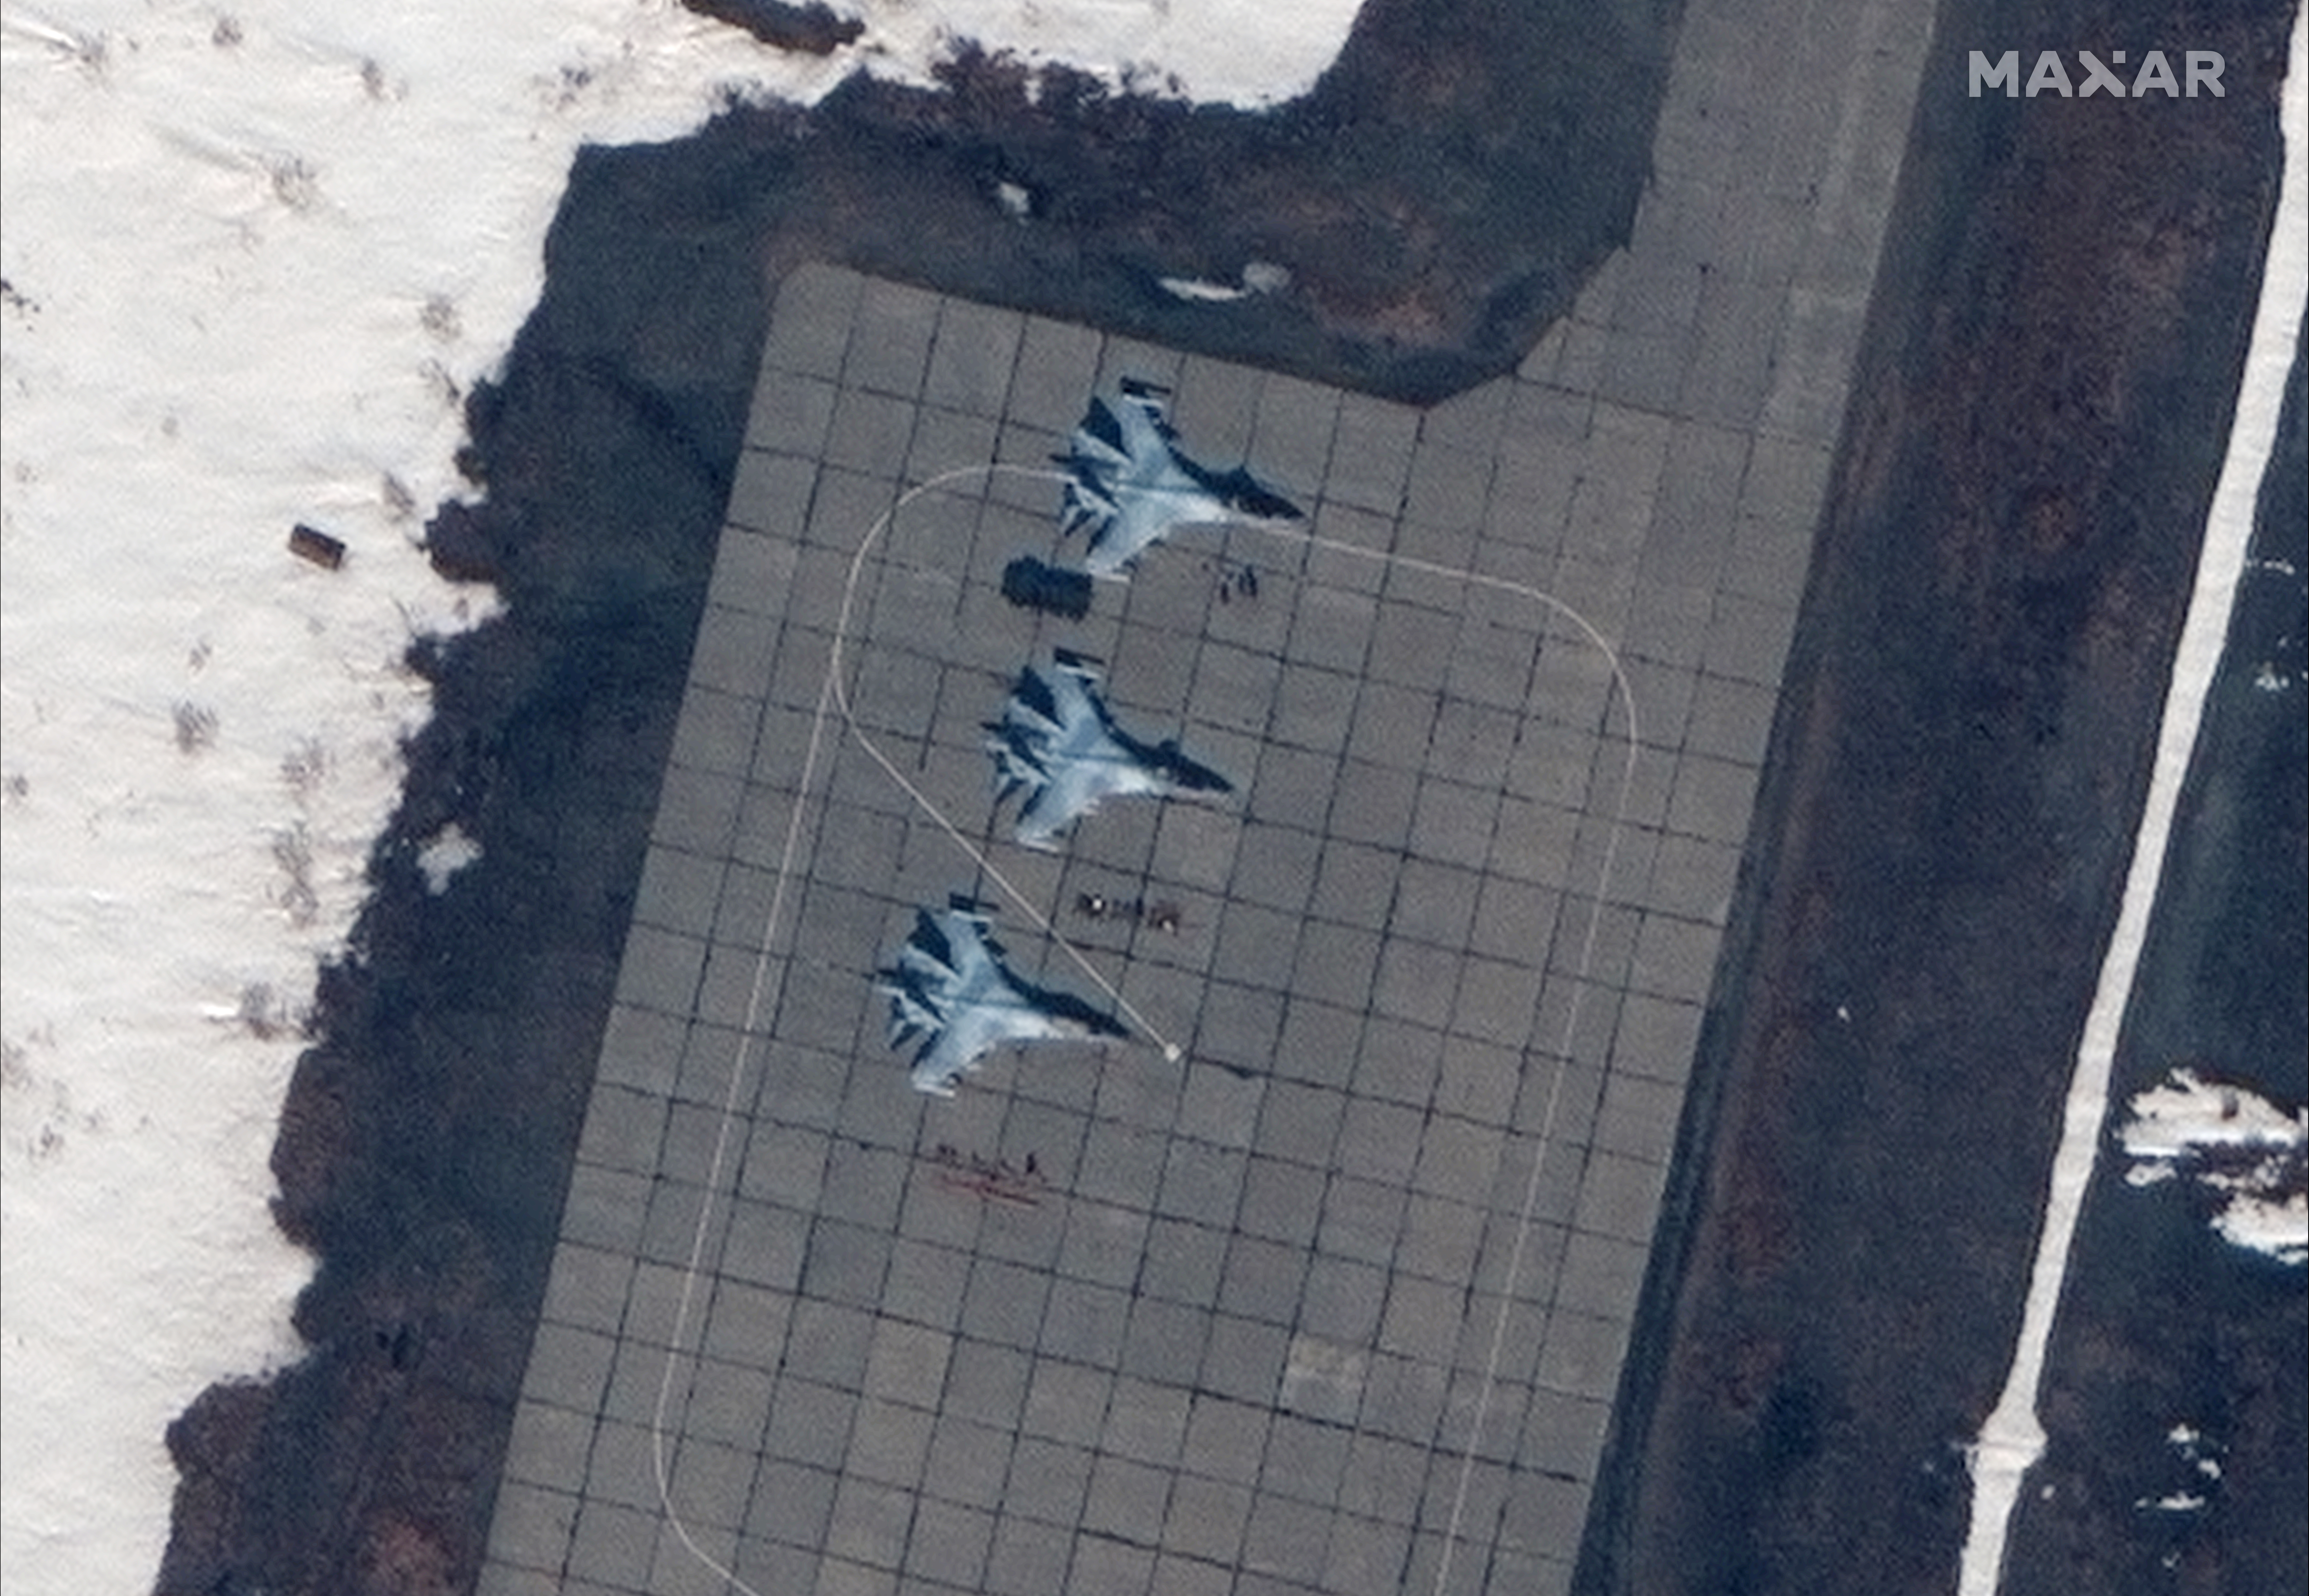 Satellite imagery of Anadyr Airfield, also known as Ugolny Airport, on May 17. (Satellite image ©2019 Maxar Technologies)